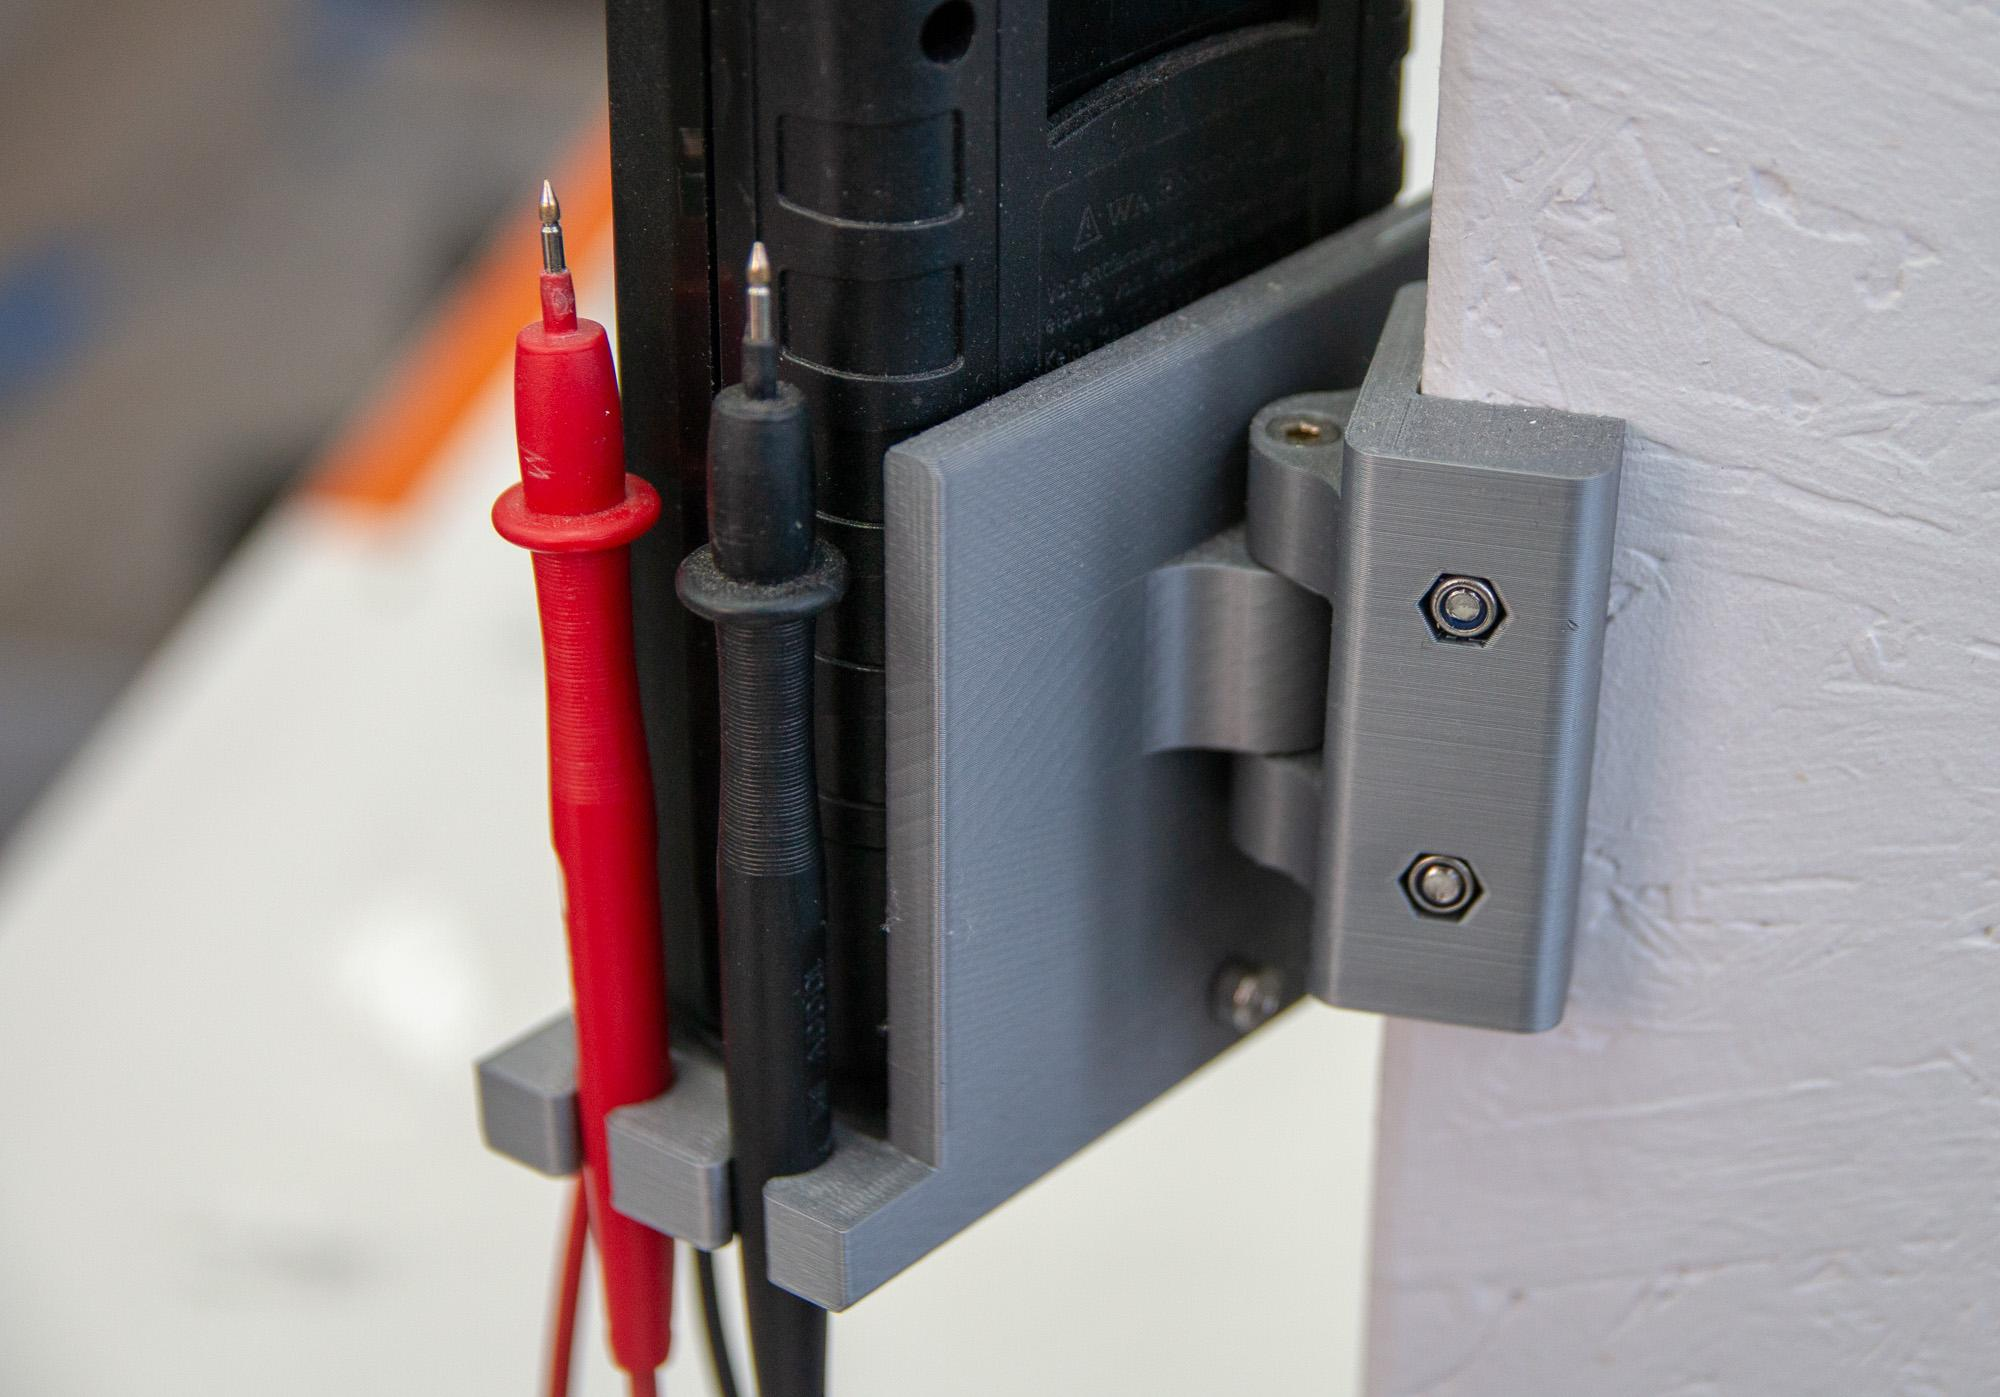 3D printed cable holder